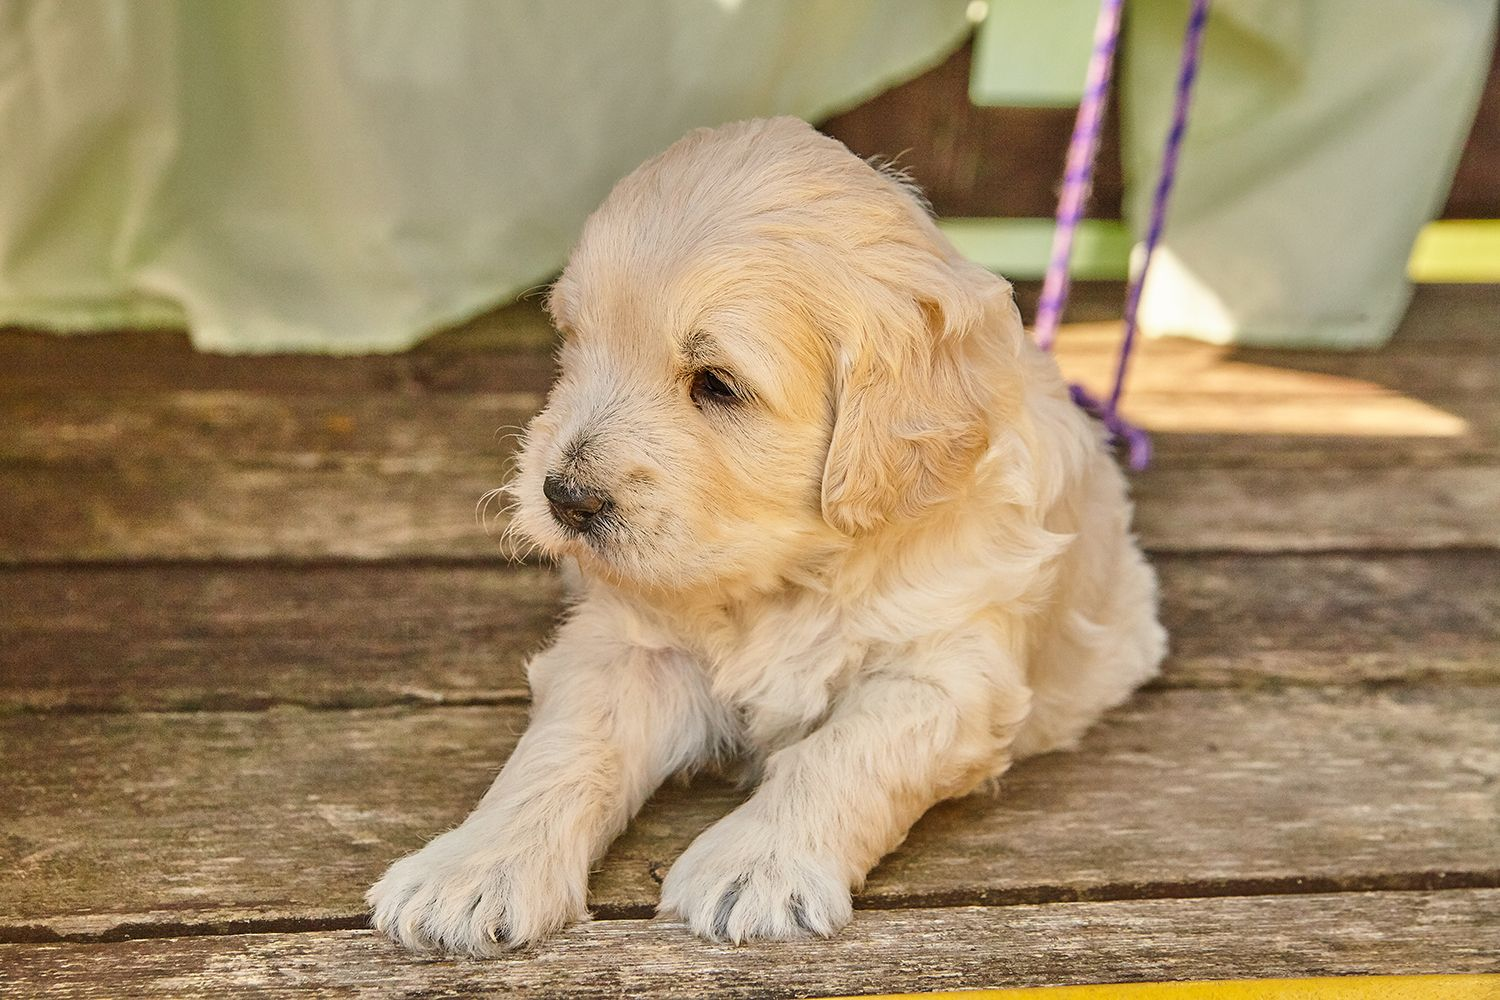 Looking For A Smaller Breed Our Mini Goldendoodles Will Only